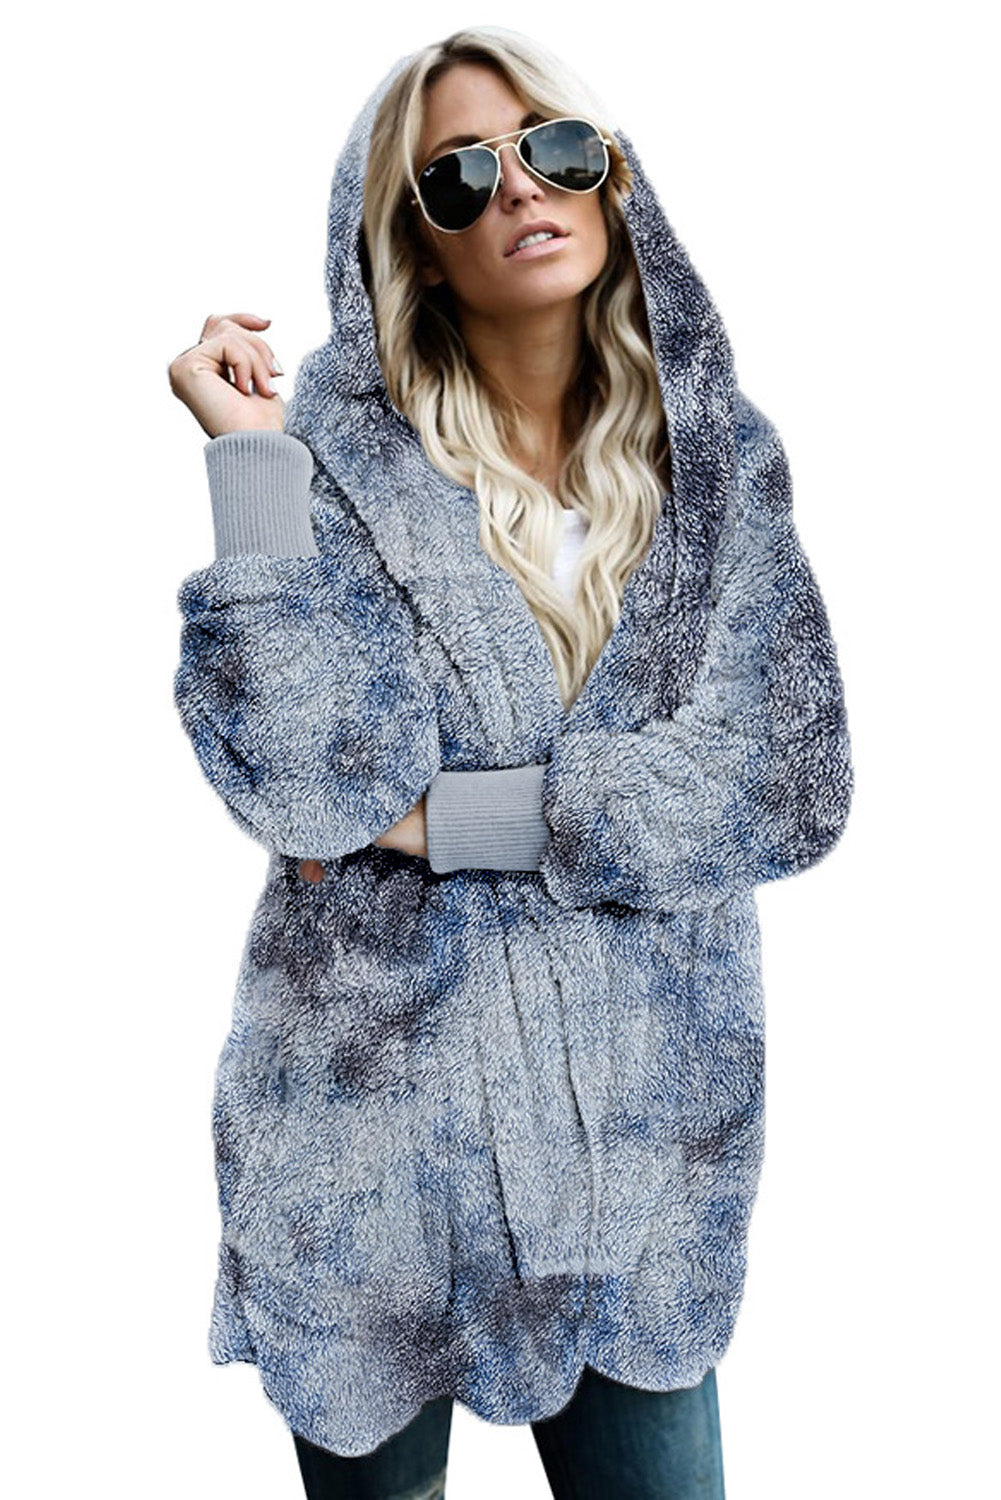 Blue Tie Dye Soft Fleece Hooded Open Front Coat